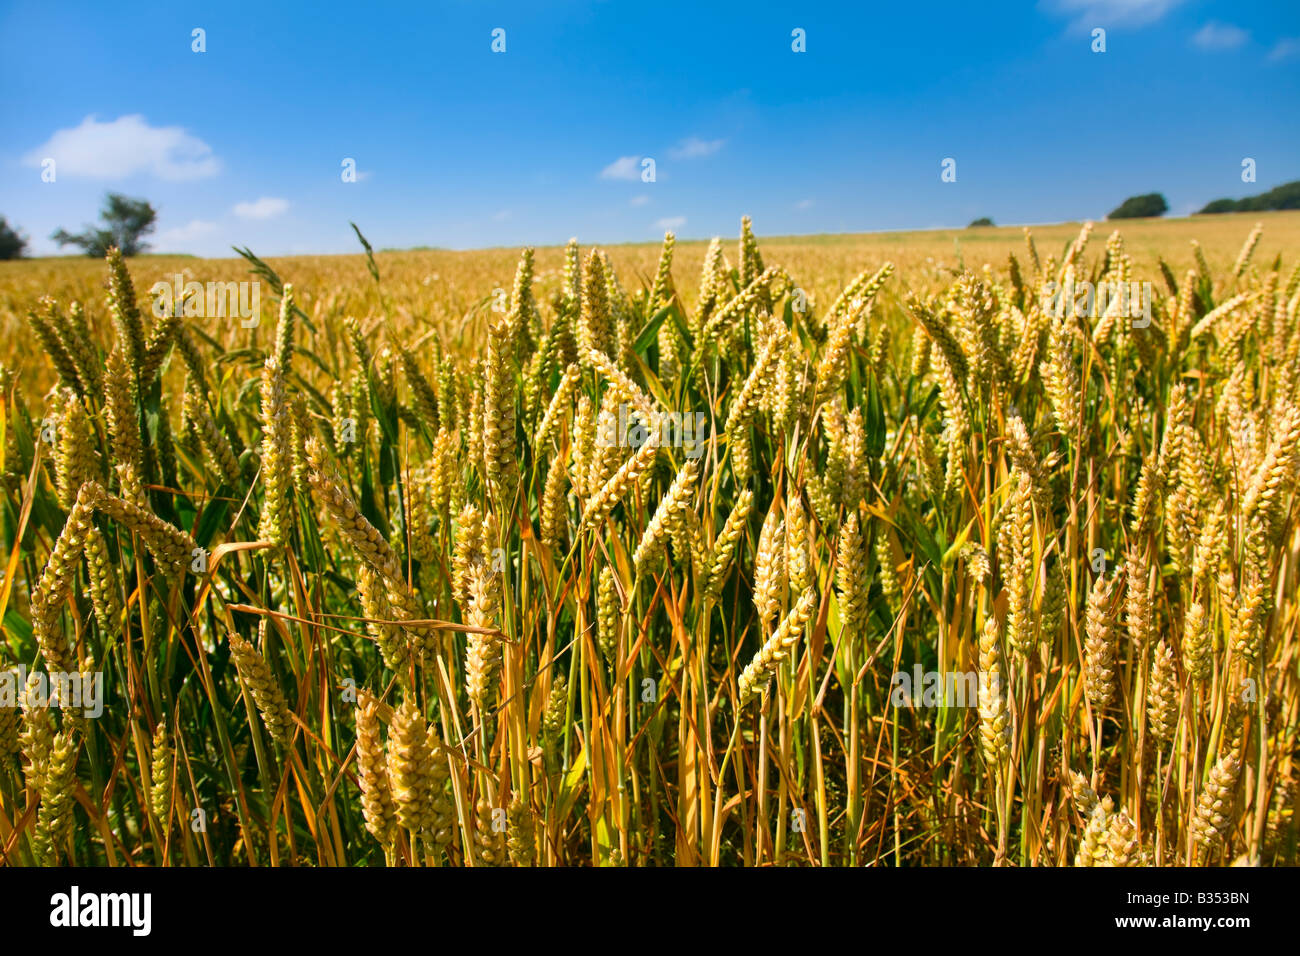 Summer Wheat Harvest Scene Stock Photo 19166777 Alamy